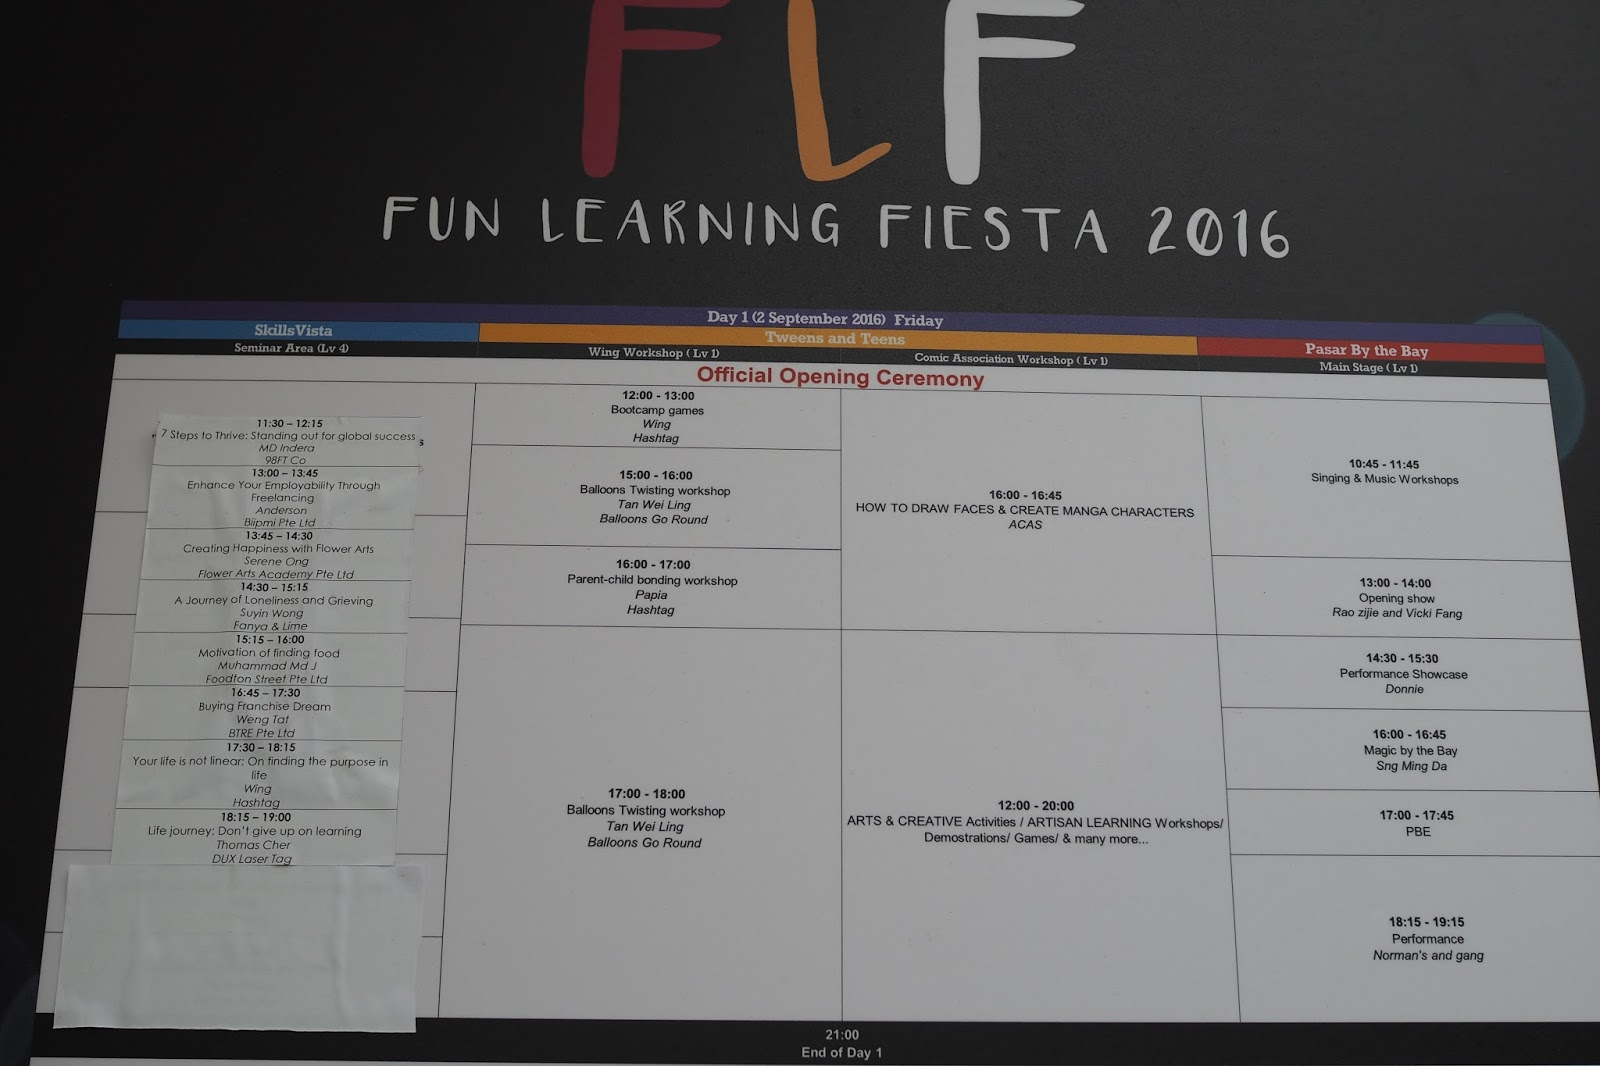 September 2016 - Fun Learning Fiesta (FLF) @ SCAPE